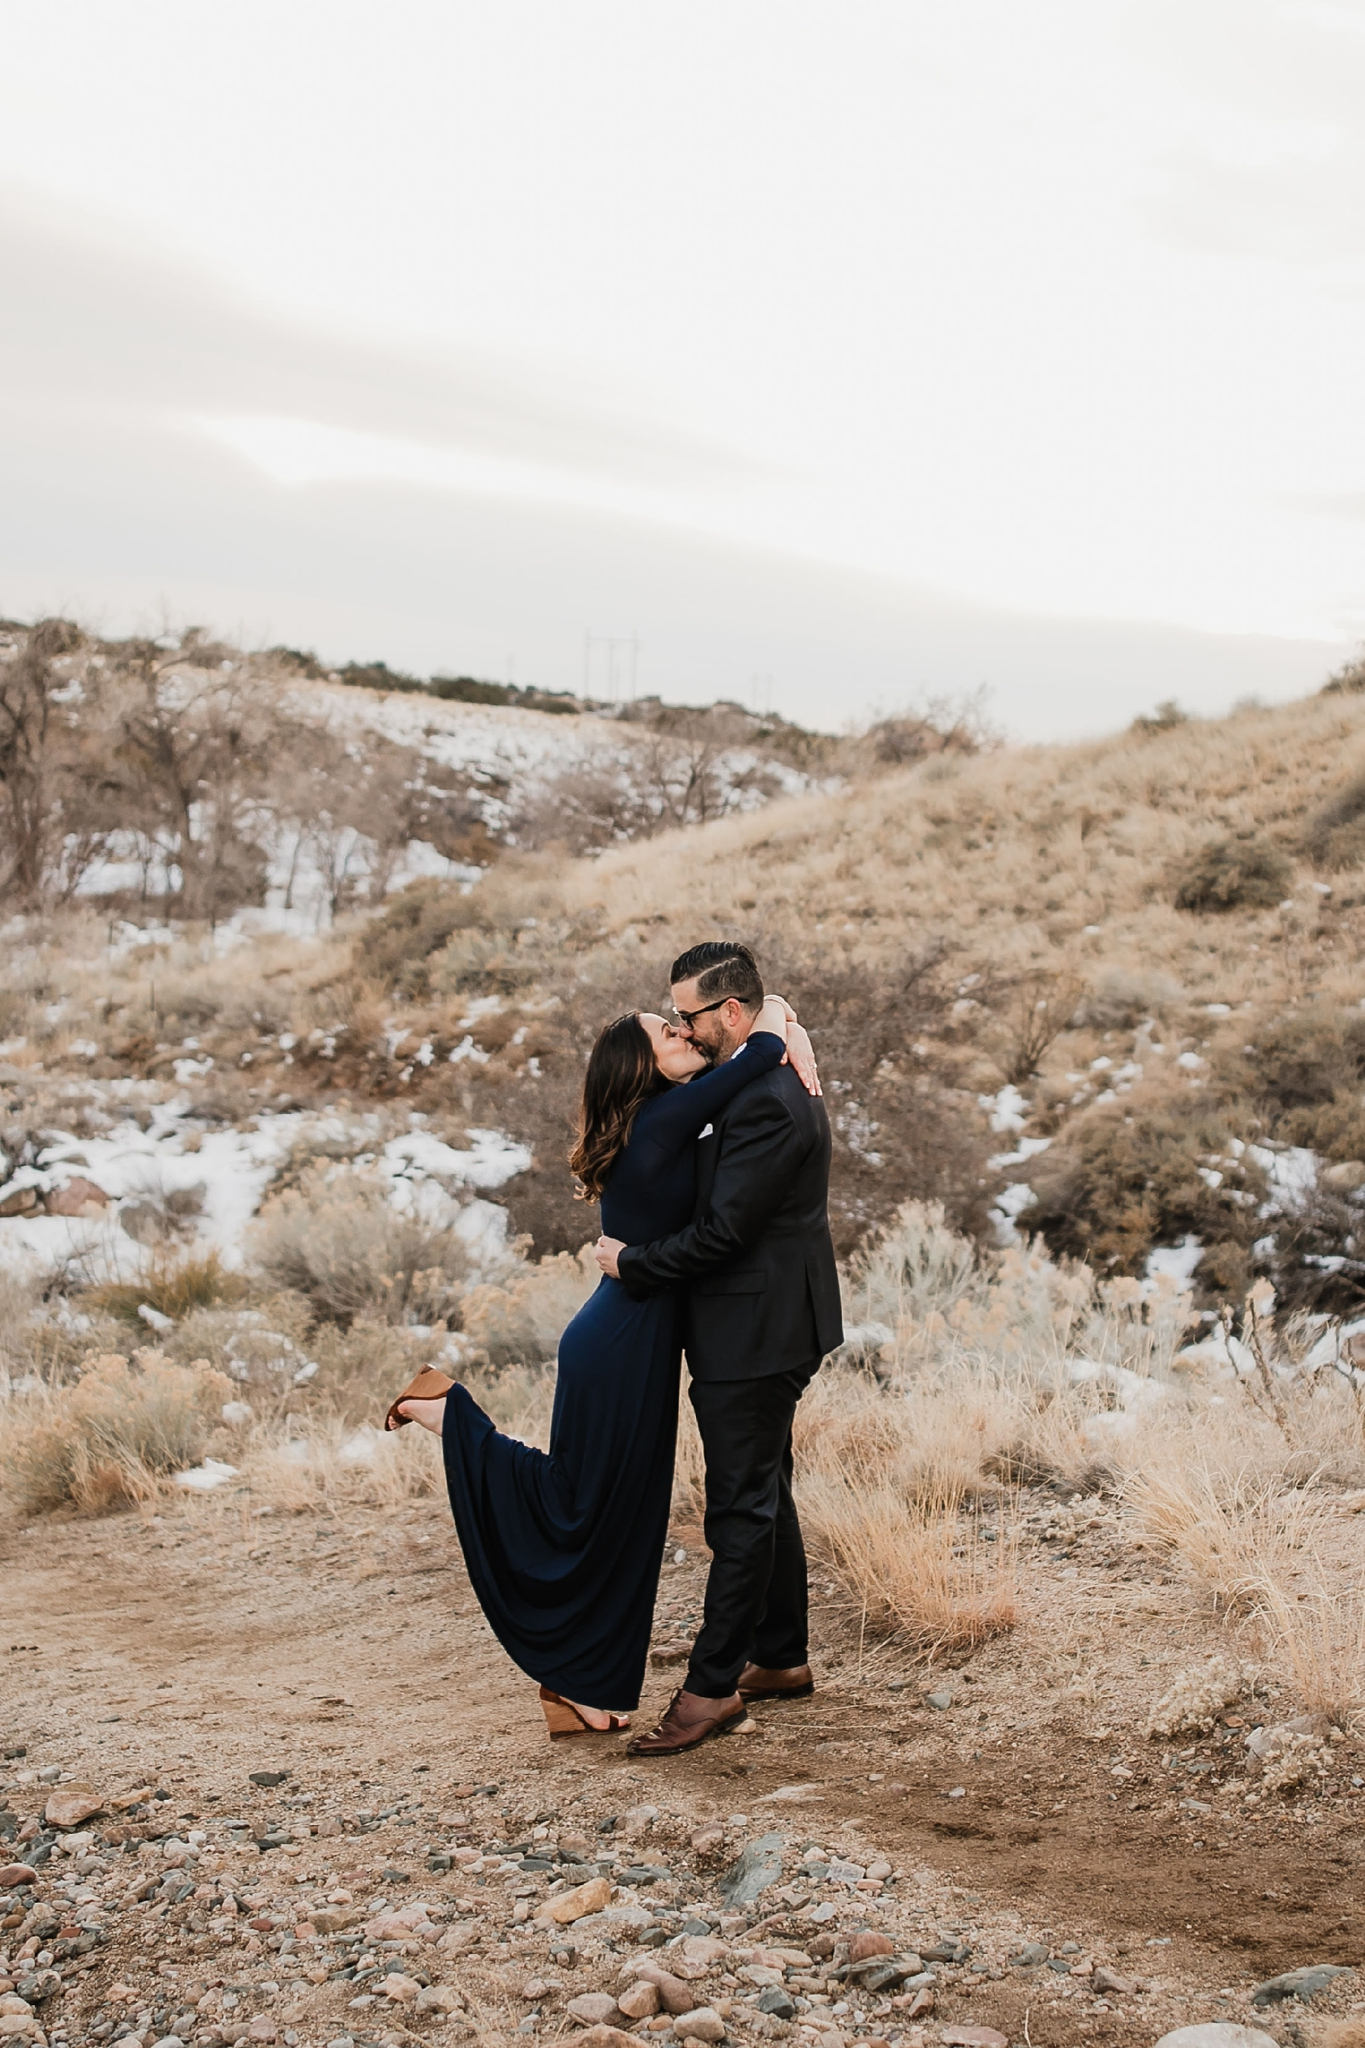 Alicia+lucia+photography+-+albuquerque+wedding+photographer+-+santa+fe+wedding+photography+-+new+mexico+wedding+photographer+-+new+mexico+wedding+-+engagement+-+winter+engagement+-+albuquerque+engagement_0016.jpg